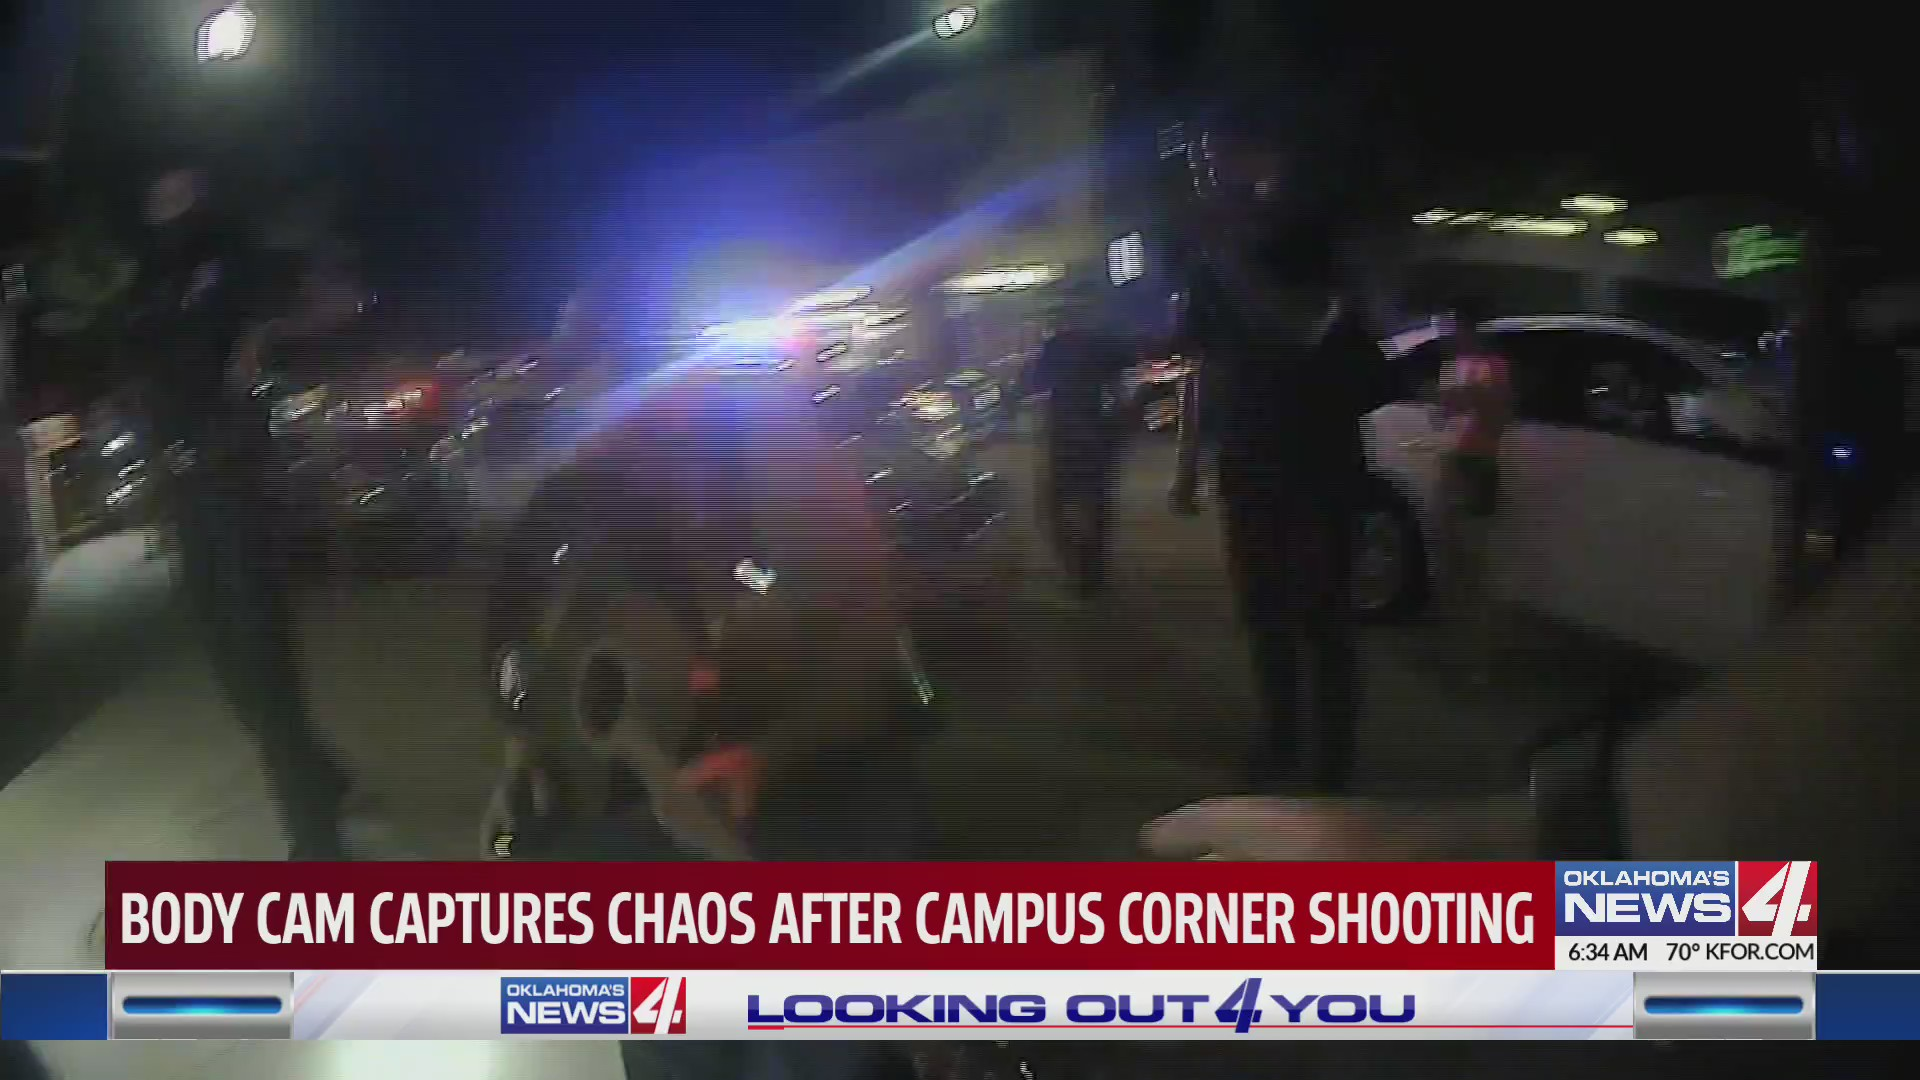 Campus Corner shooting body camera footage